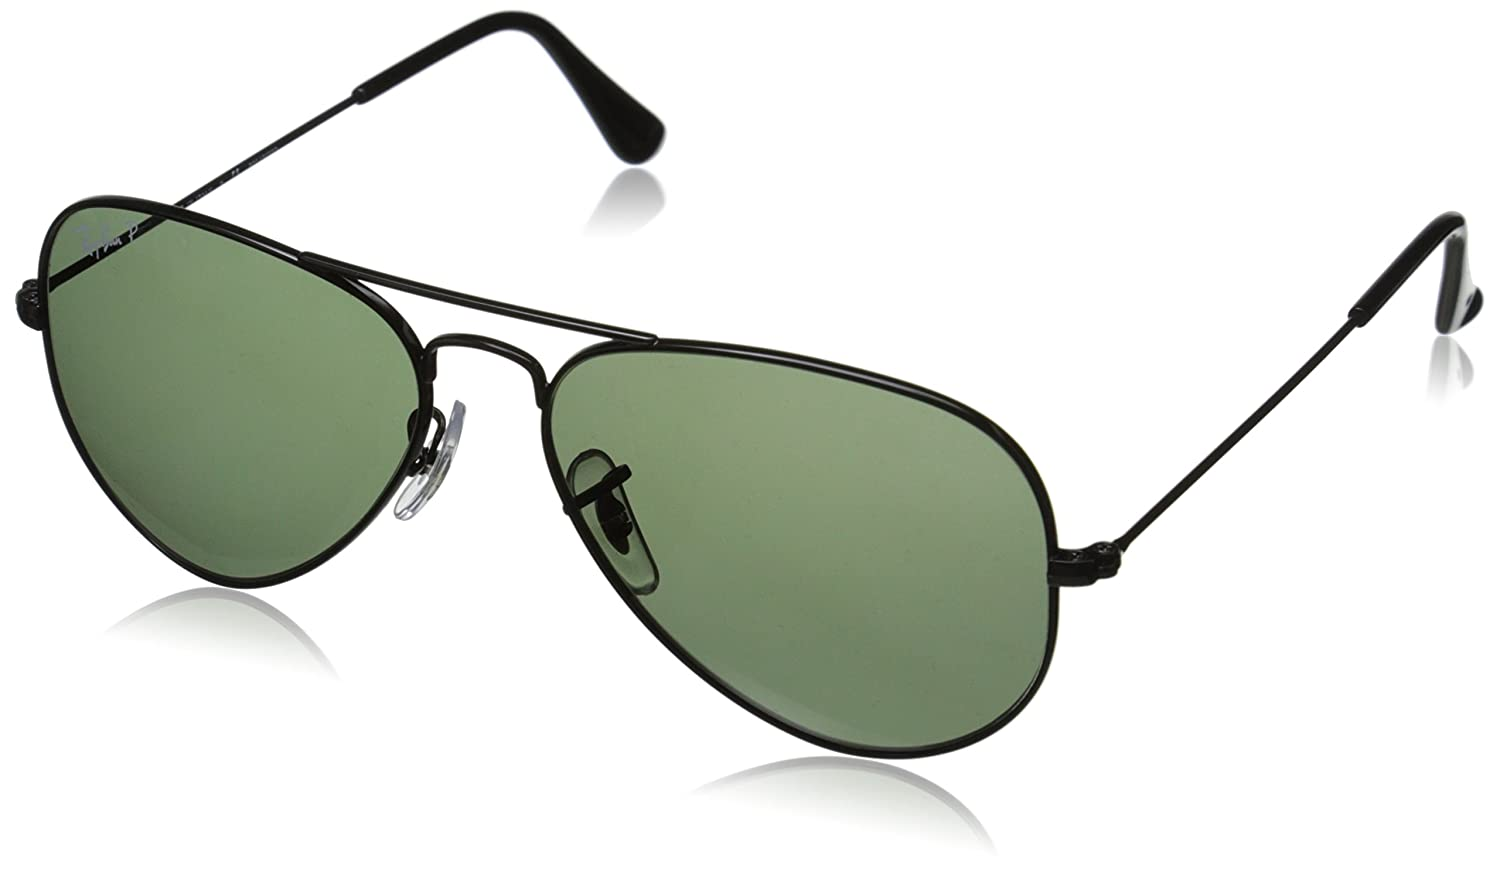 Amazon.com: Ray-Ban AVIATOR LARGE METAL - BLACK Frame CRYSTAL GREEN POLARIZED Lenses 55mm Polarized: Ray-Ban: Clothing